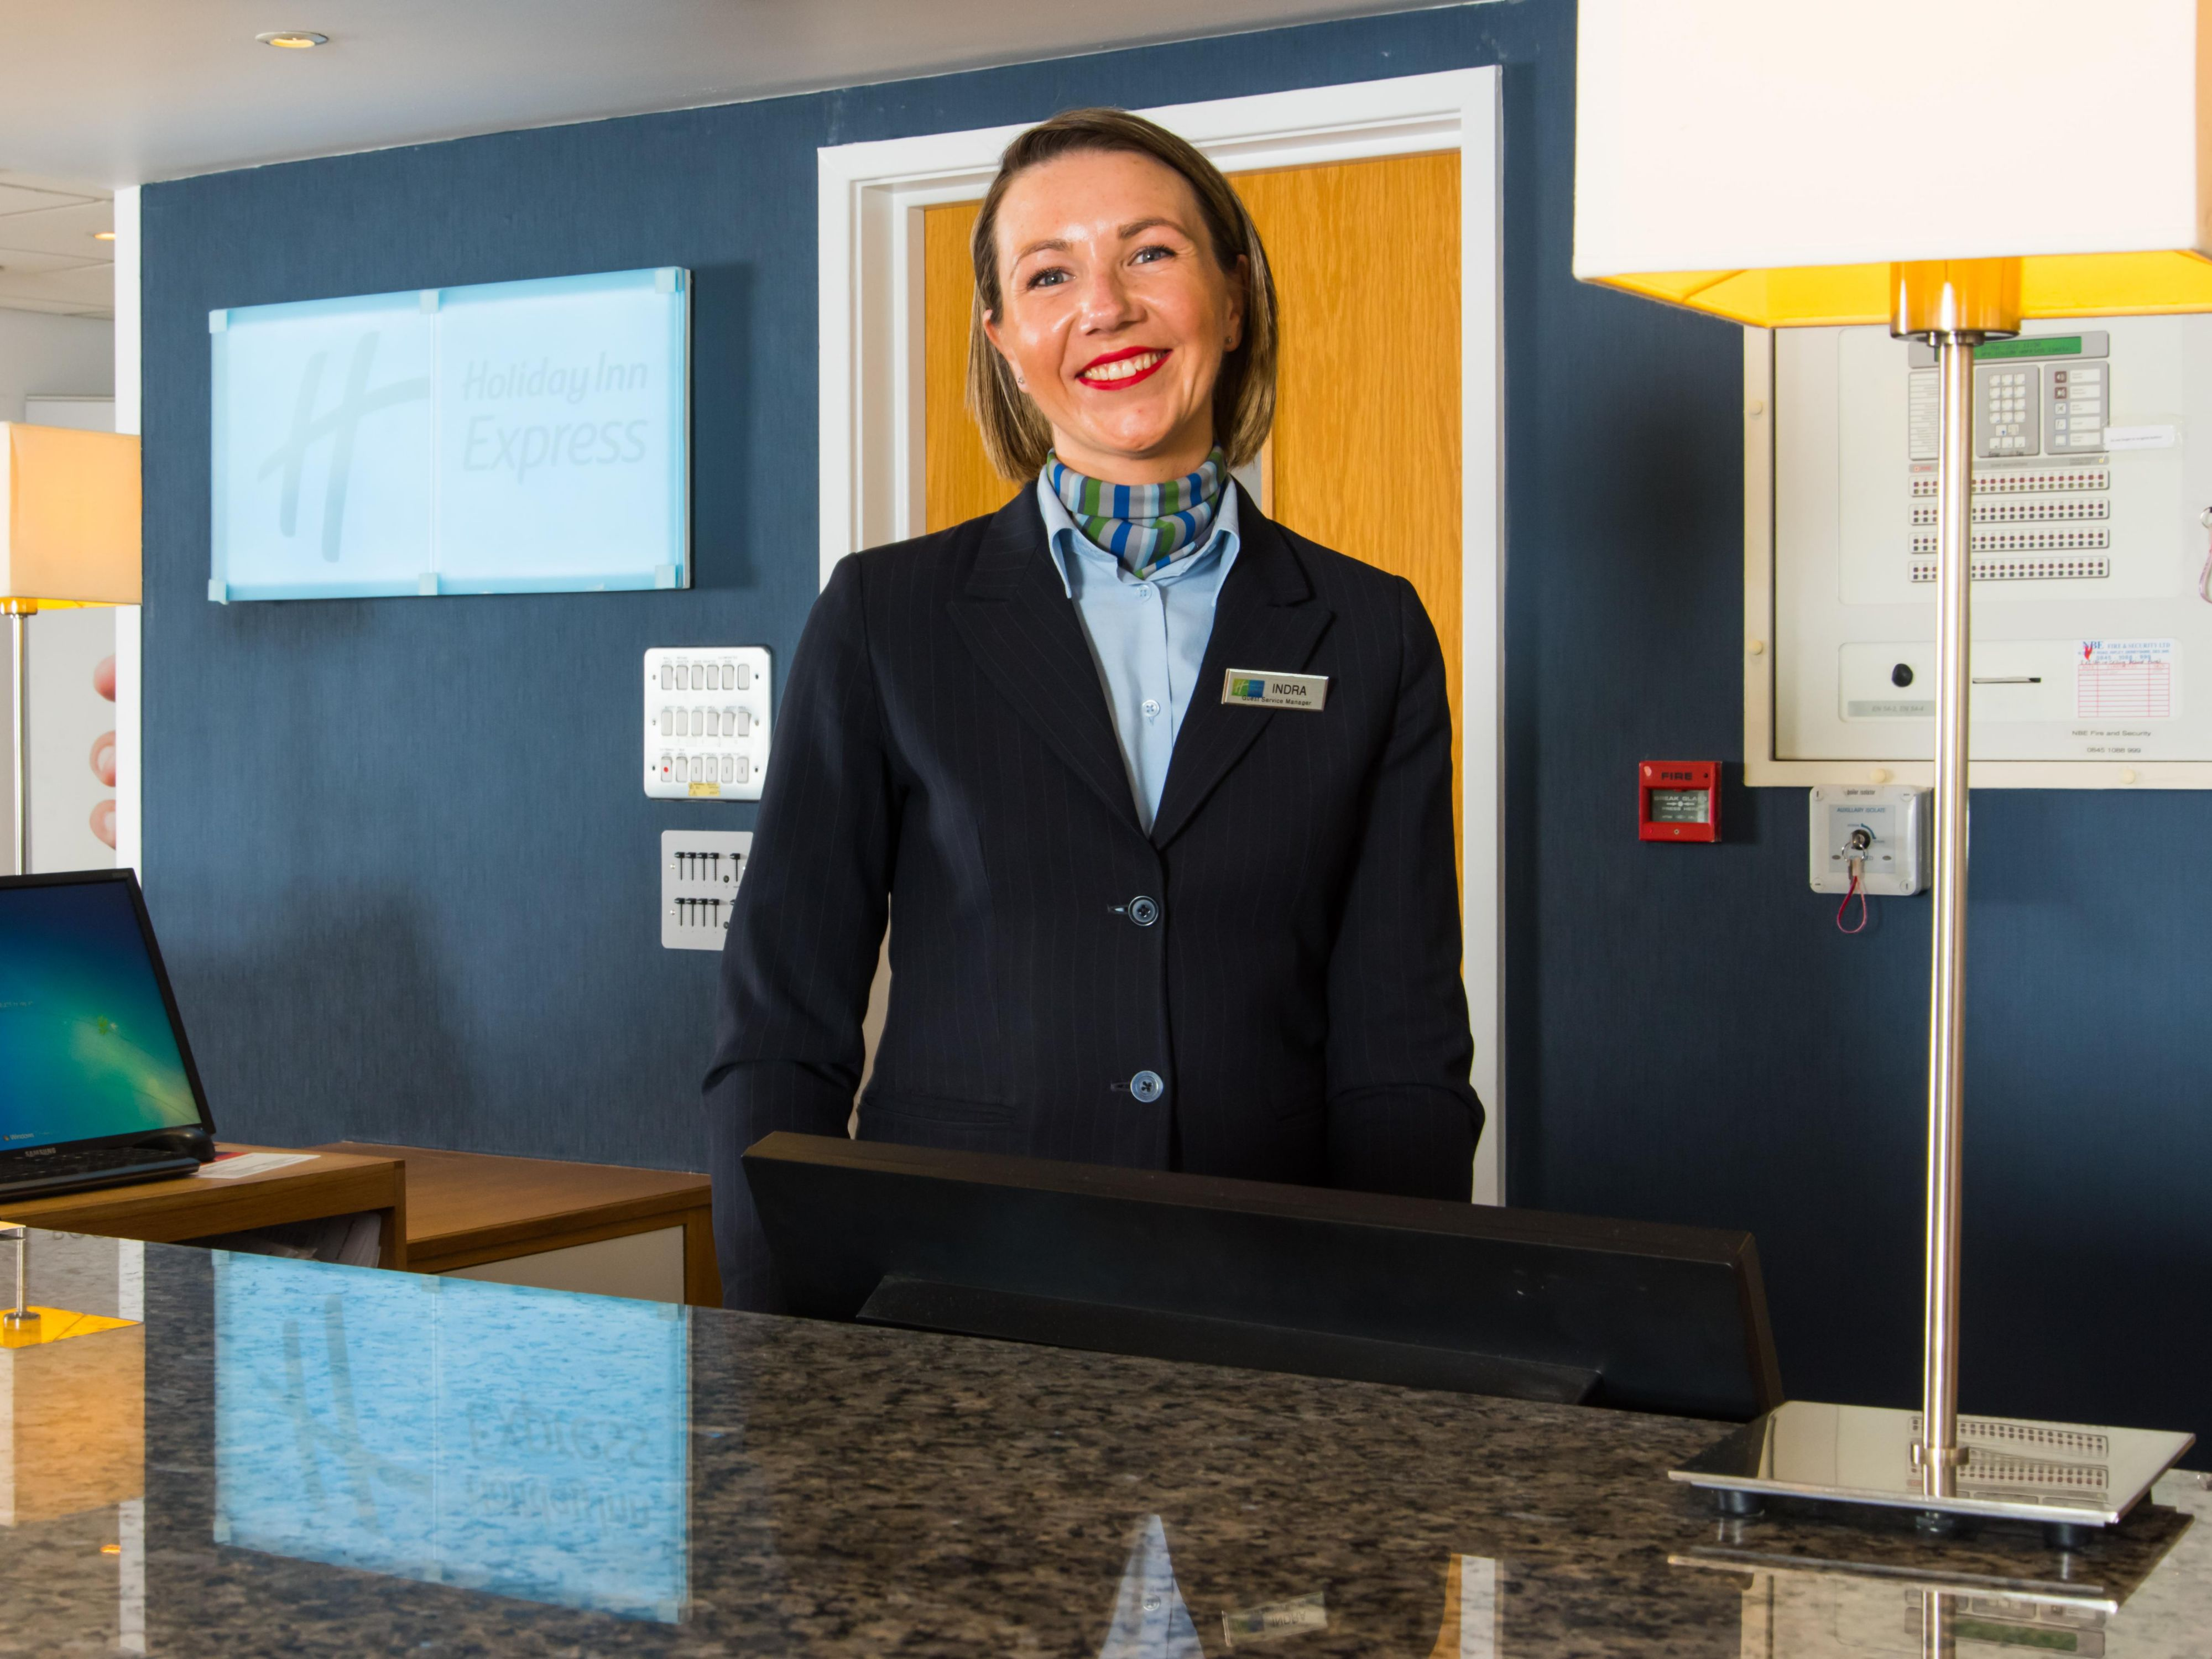 We're always happy to help! Our front desk is manned 24/7